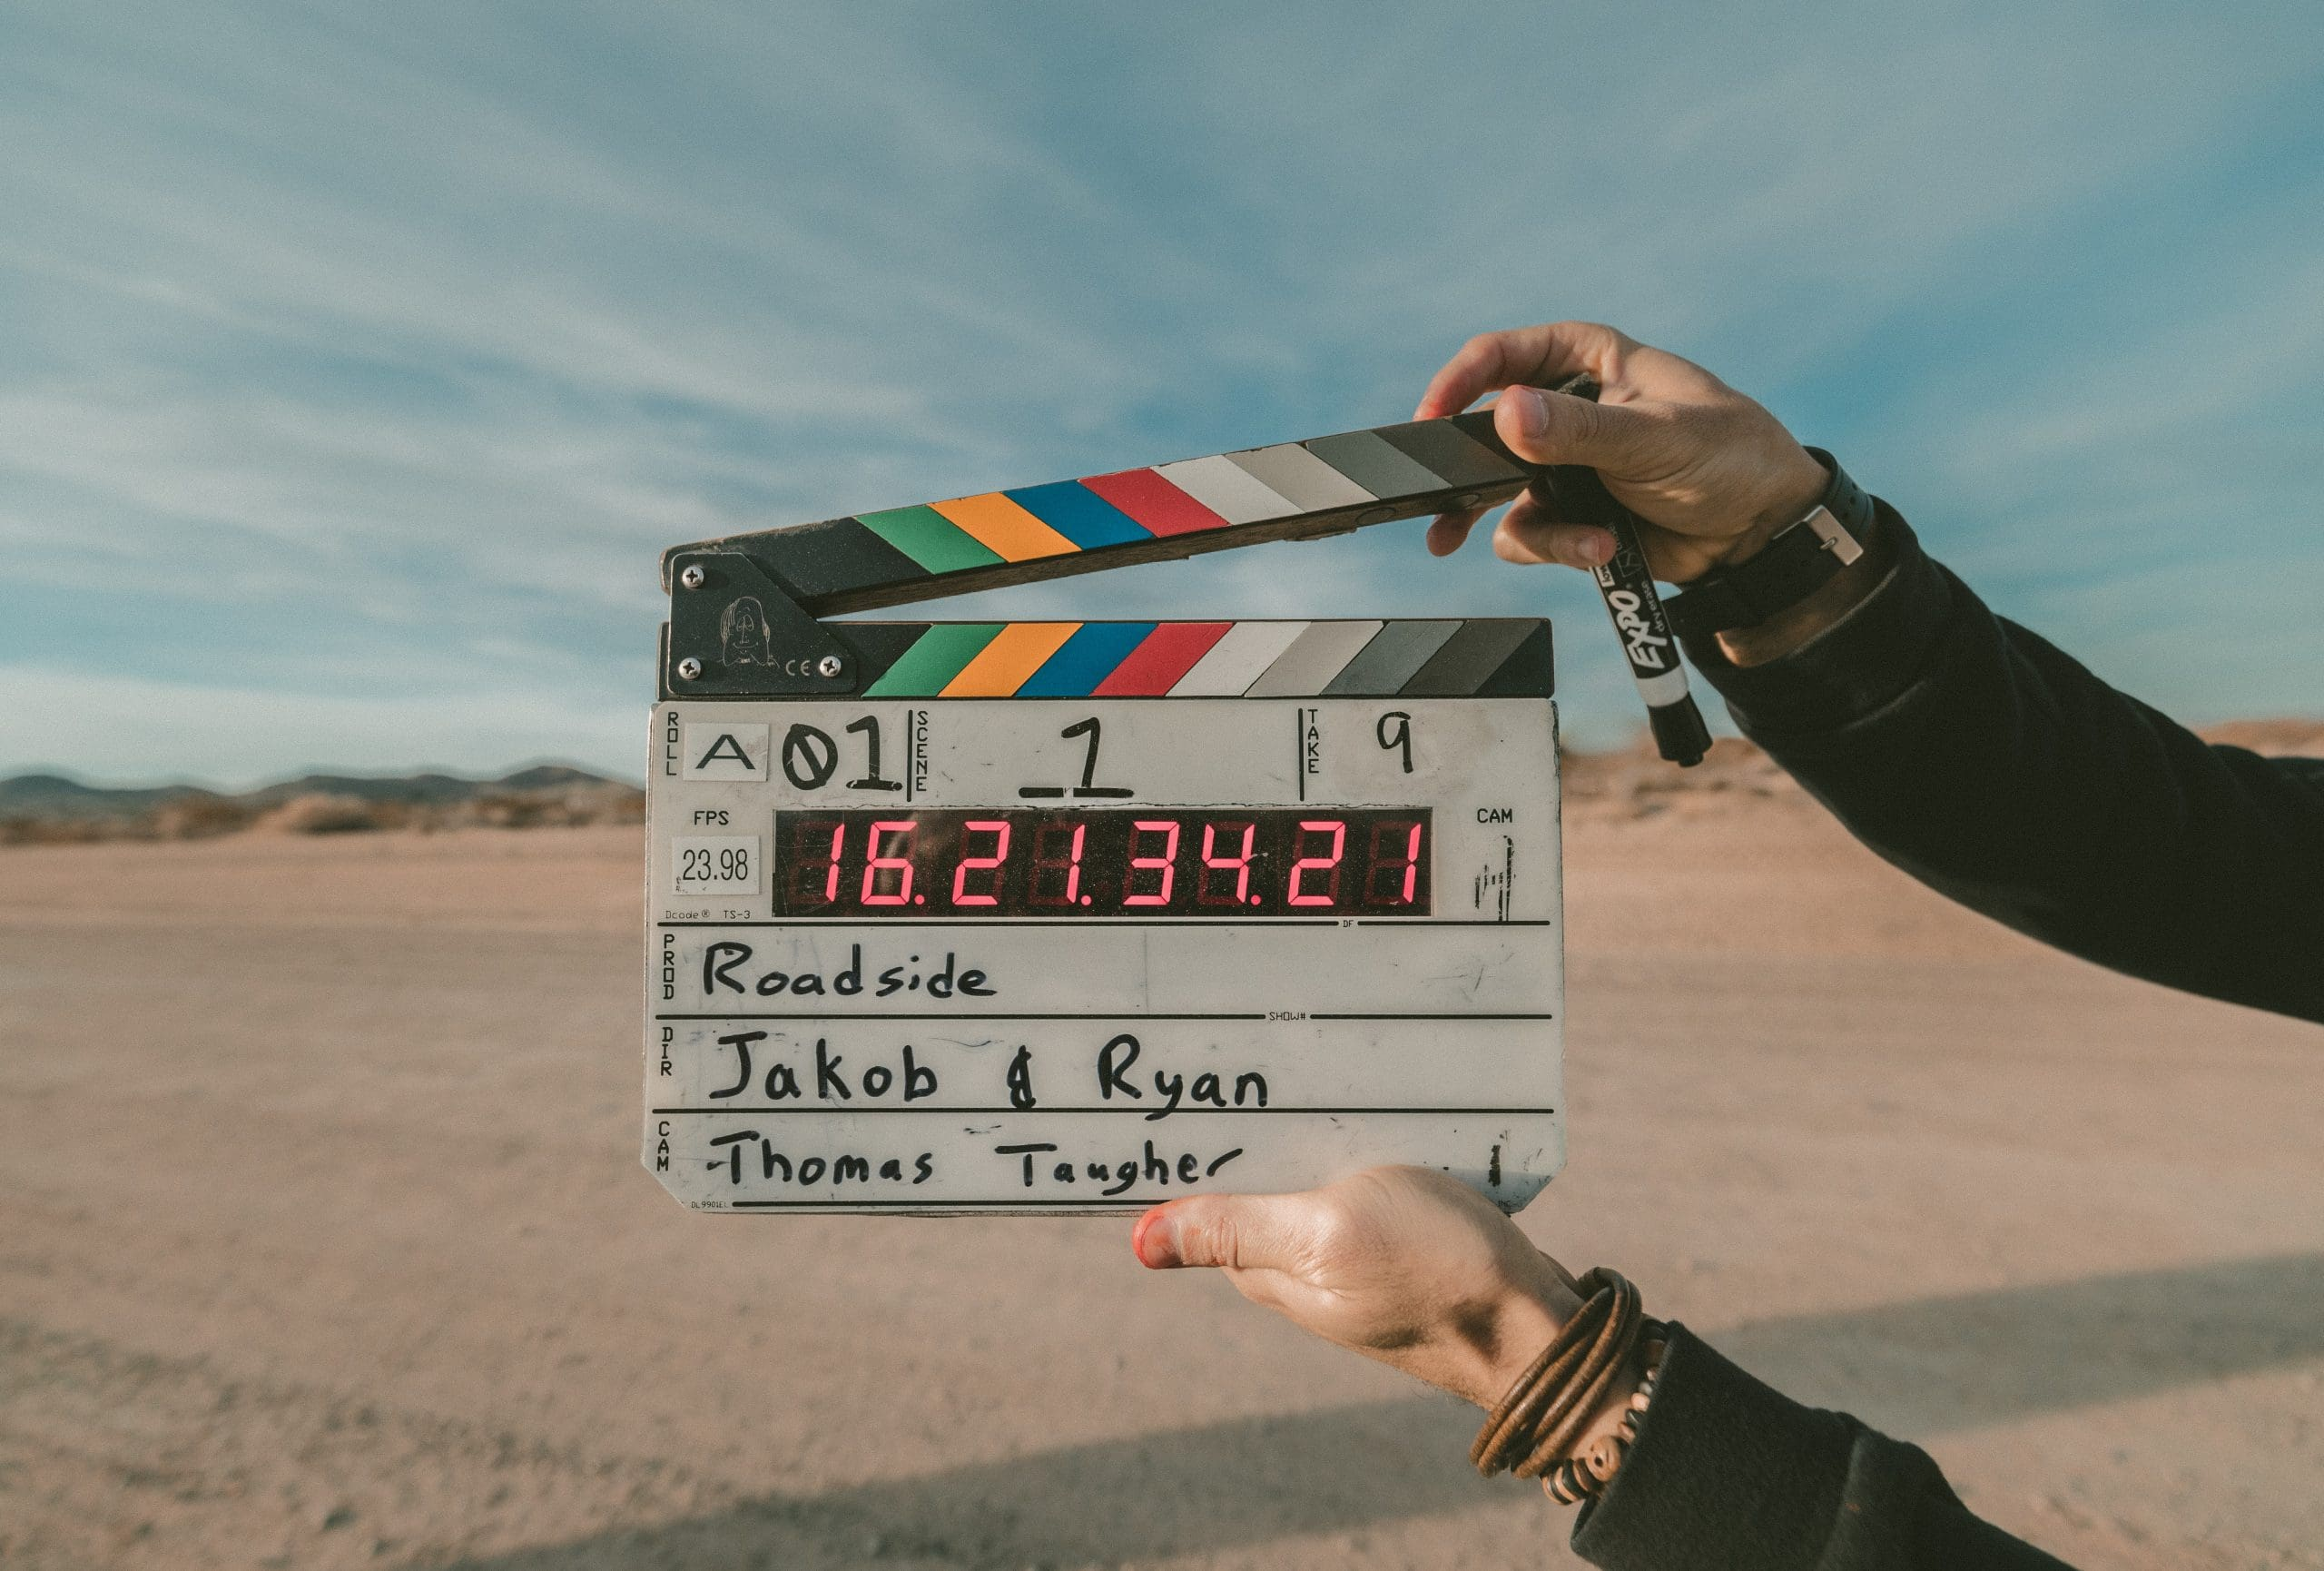 How to prepare a professional video resume - An image of a film scene